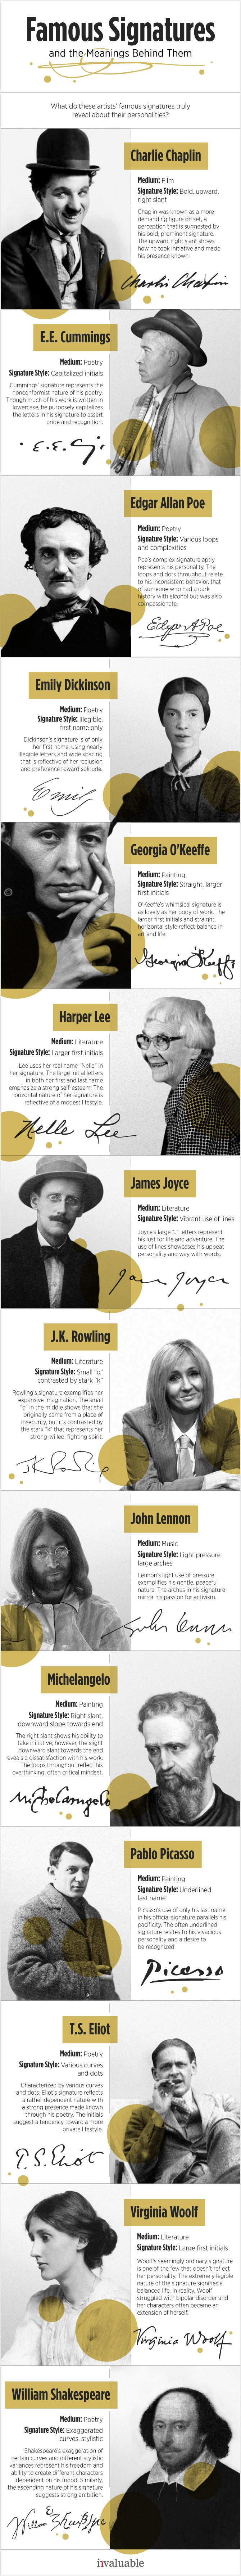 Handwriting Analysis: A Look at Some Famous Creatives Signatures